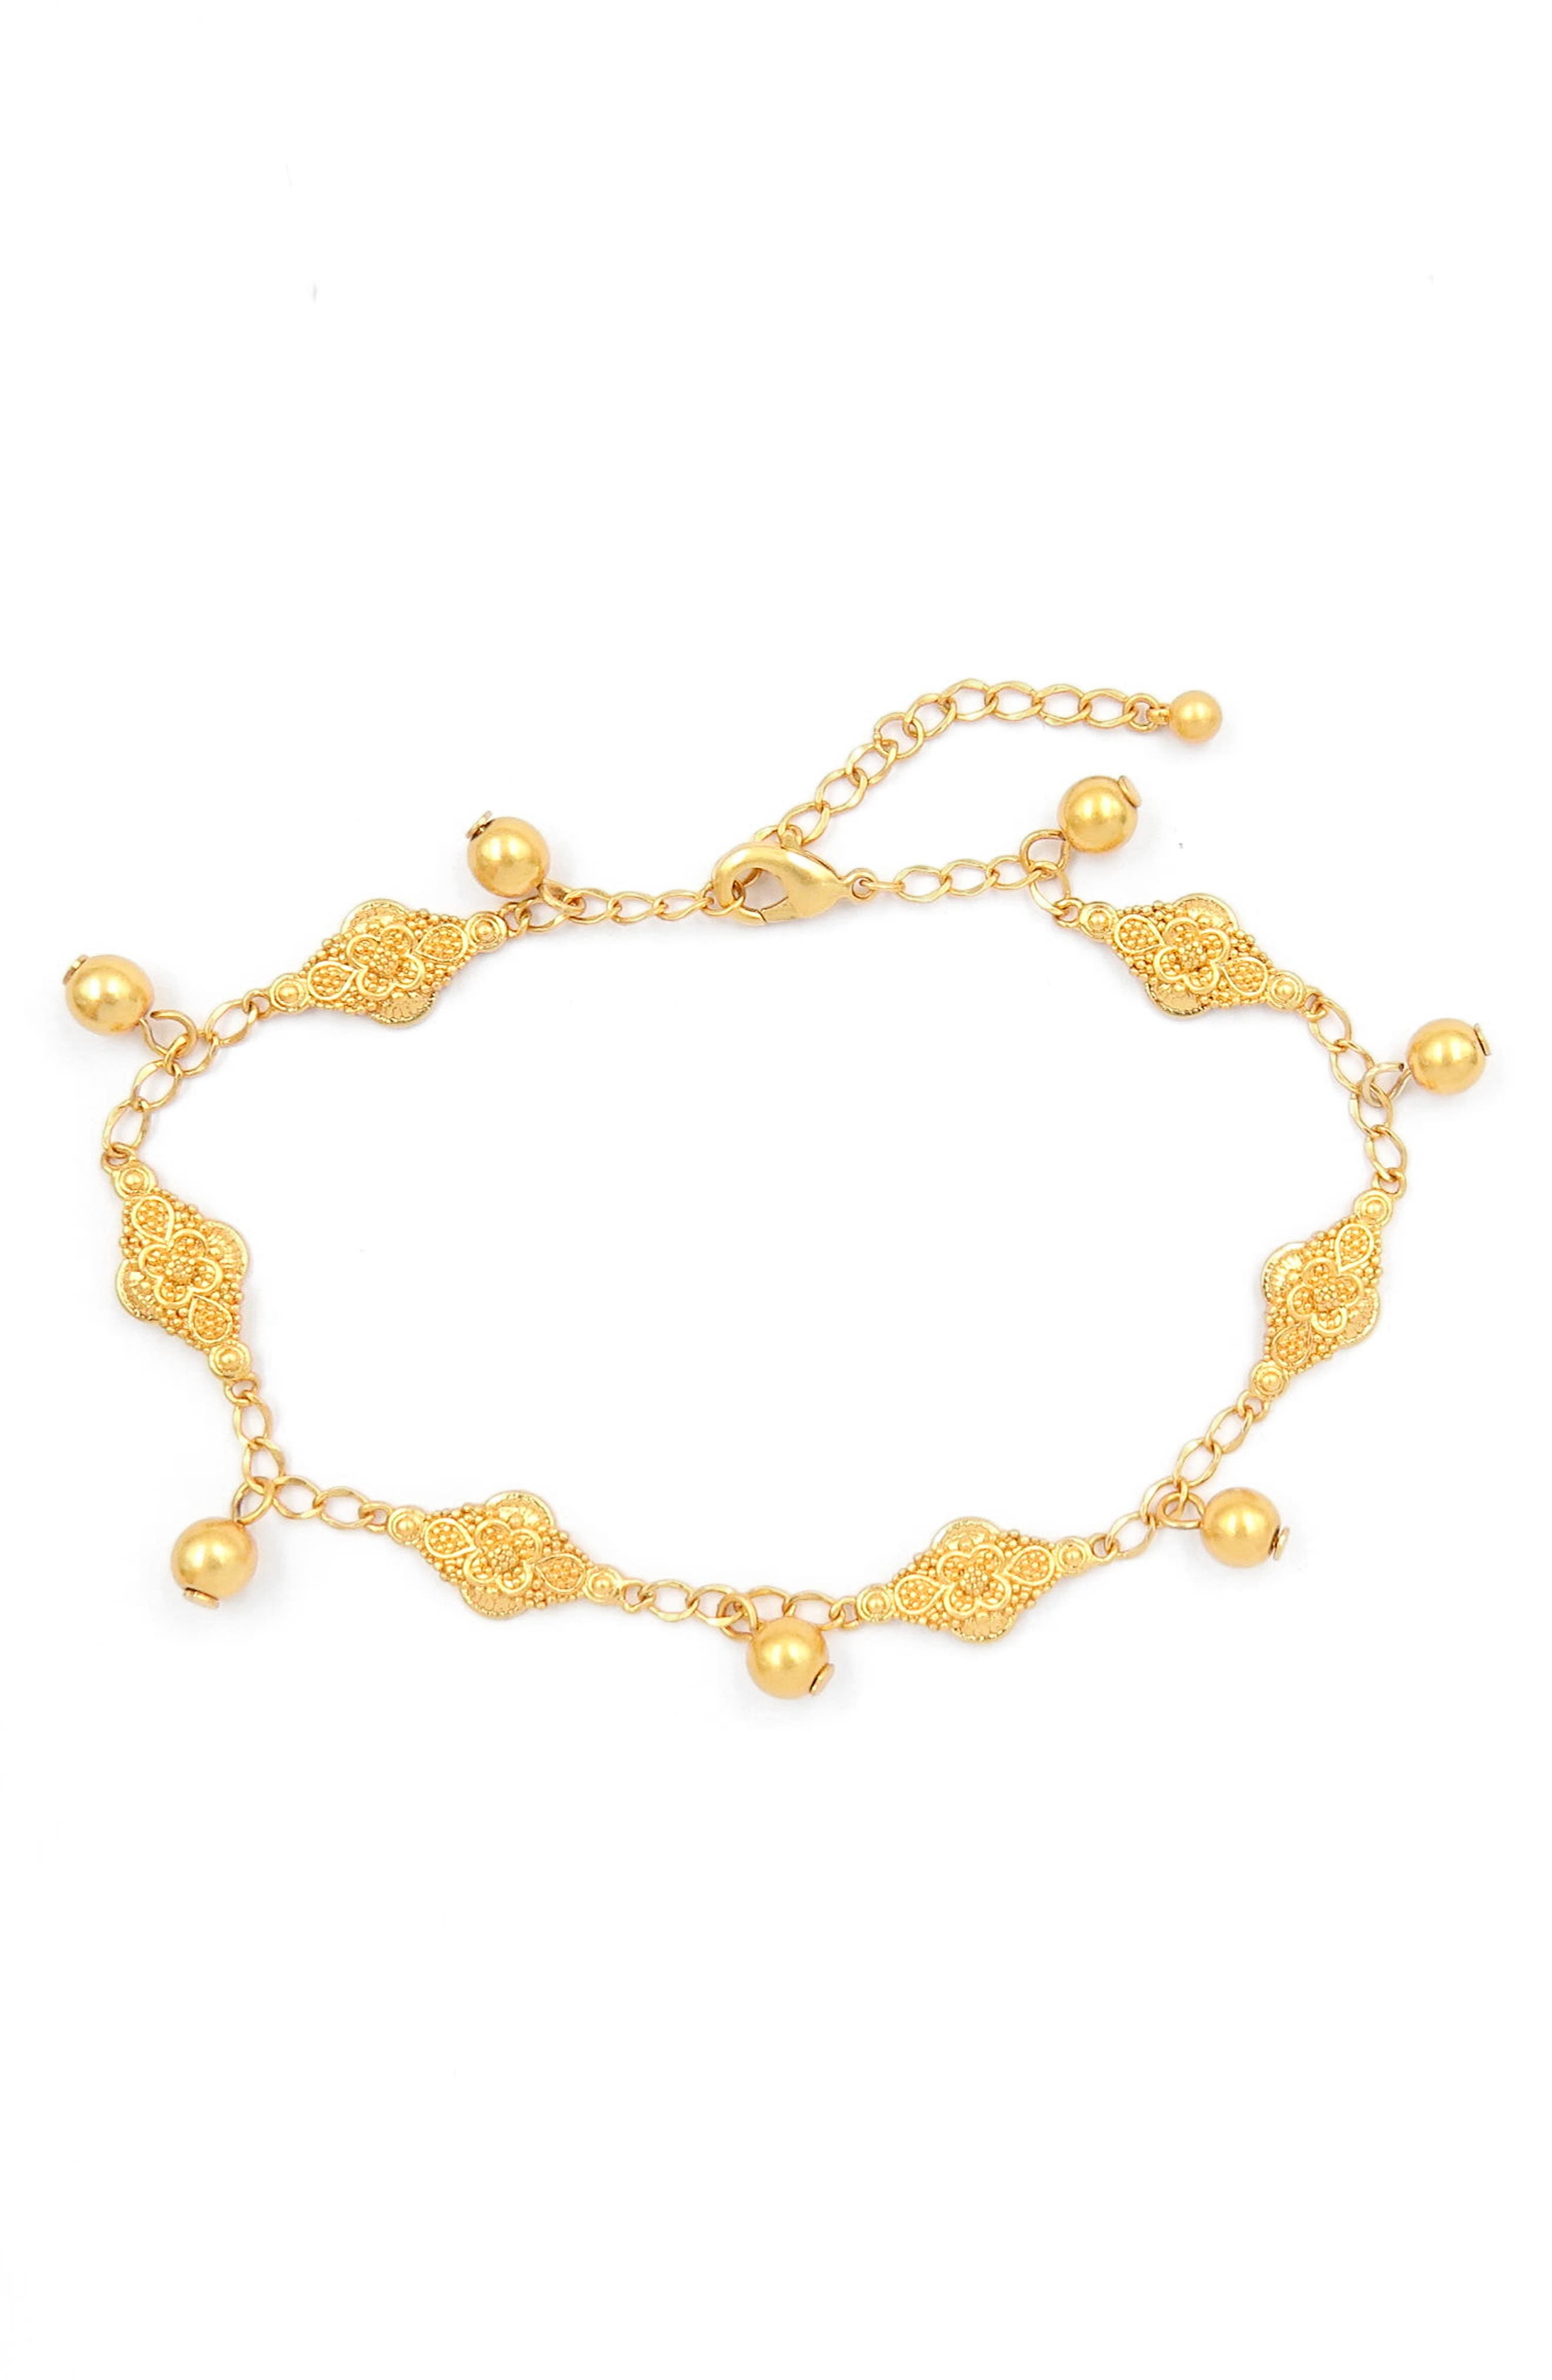 Station Chain Anklet,                         Main,                         color, Gold